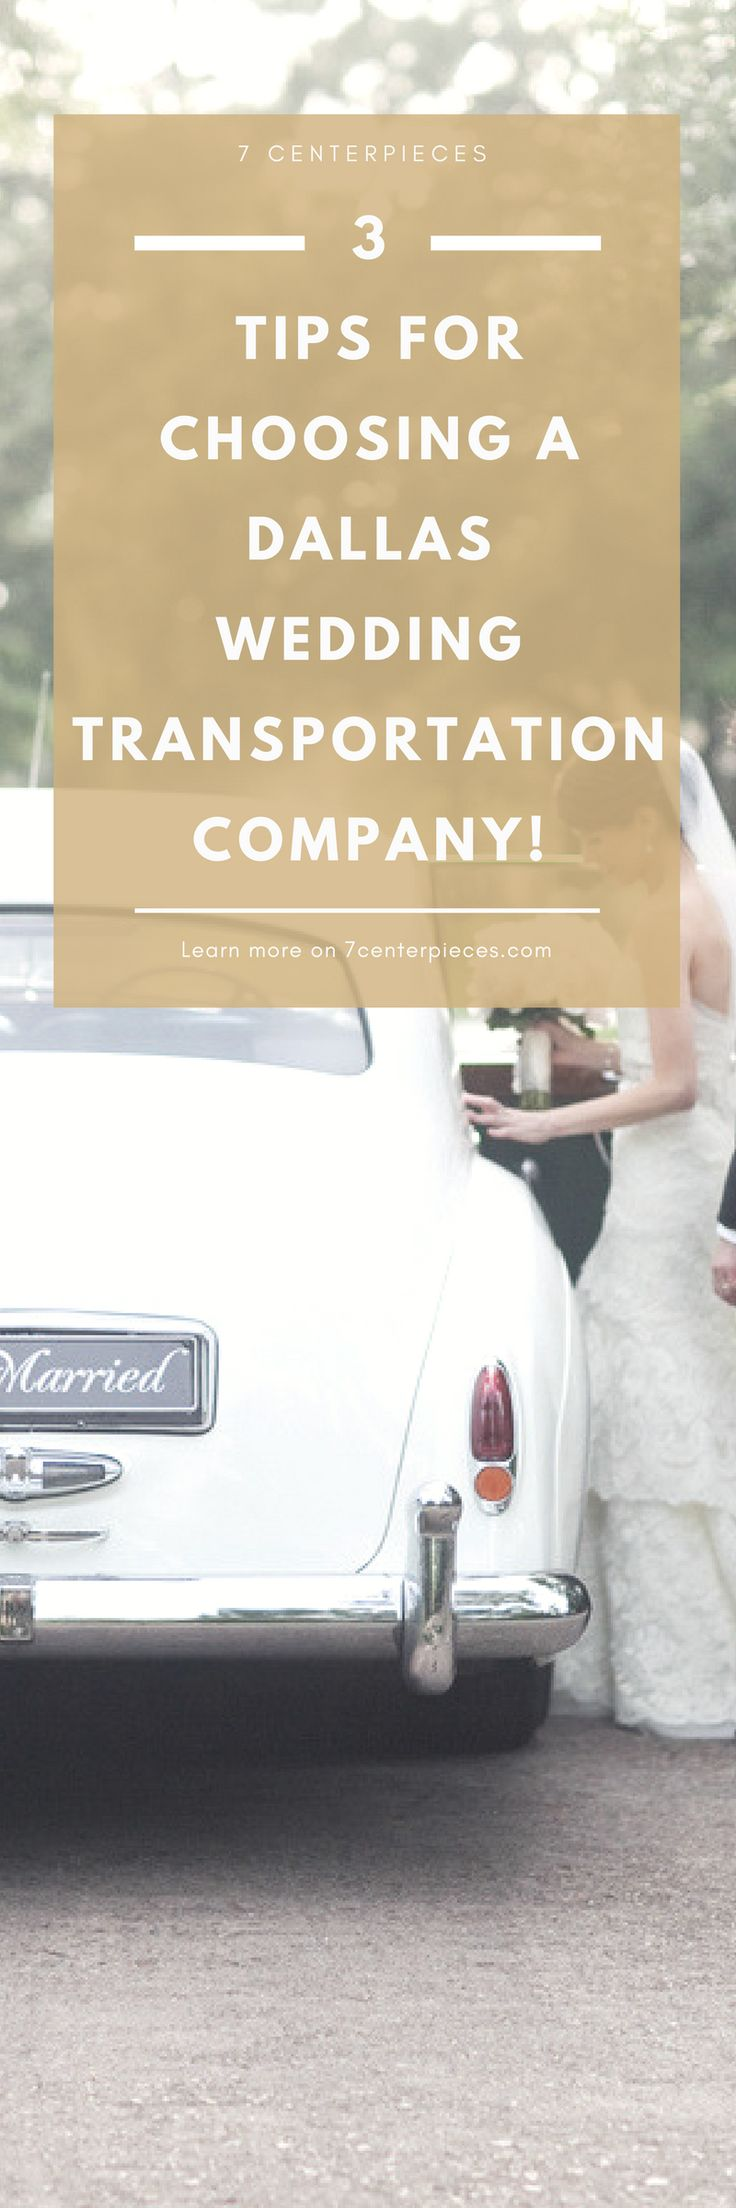 Are you searching for the perfect wedding transportation for your guests? Still can't find wedding transportation for your bridal party? Then you must check out this article filled with tips and ideas for choosing a wedding transportation company! PIN IT NOW! You won't regret it. #weddingtransportation #dallaswedding #7centerpieces